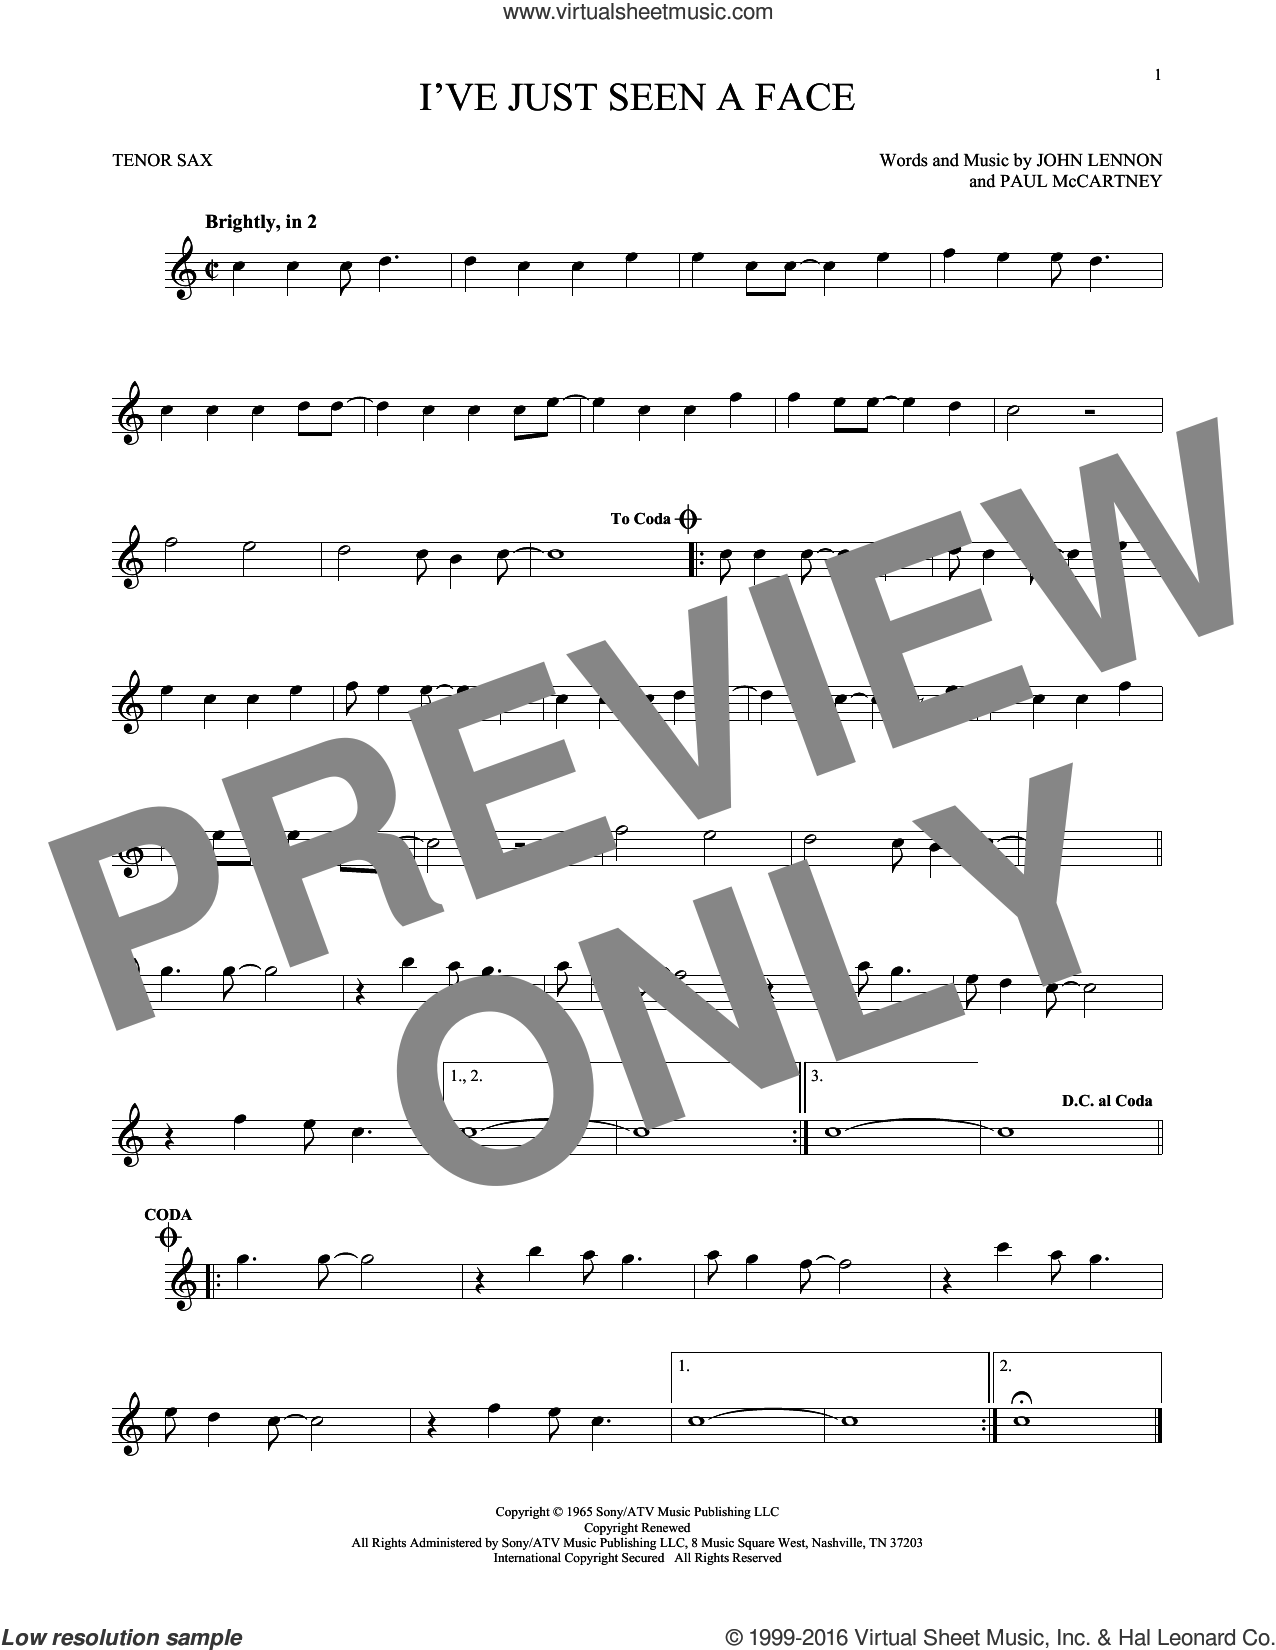 I've Just Seen A Face sheet music for tenor saxophone solo by The Beatles, John Lennon and Paul McCartney, intermediate skill level